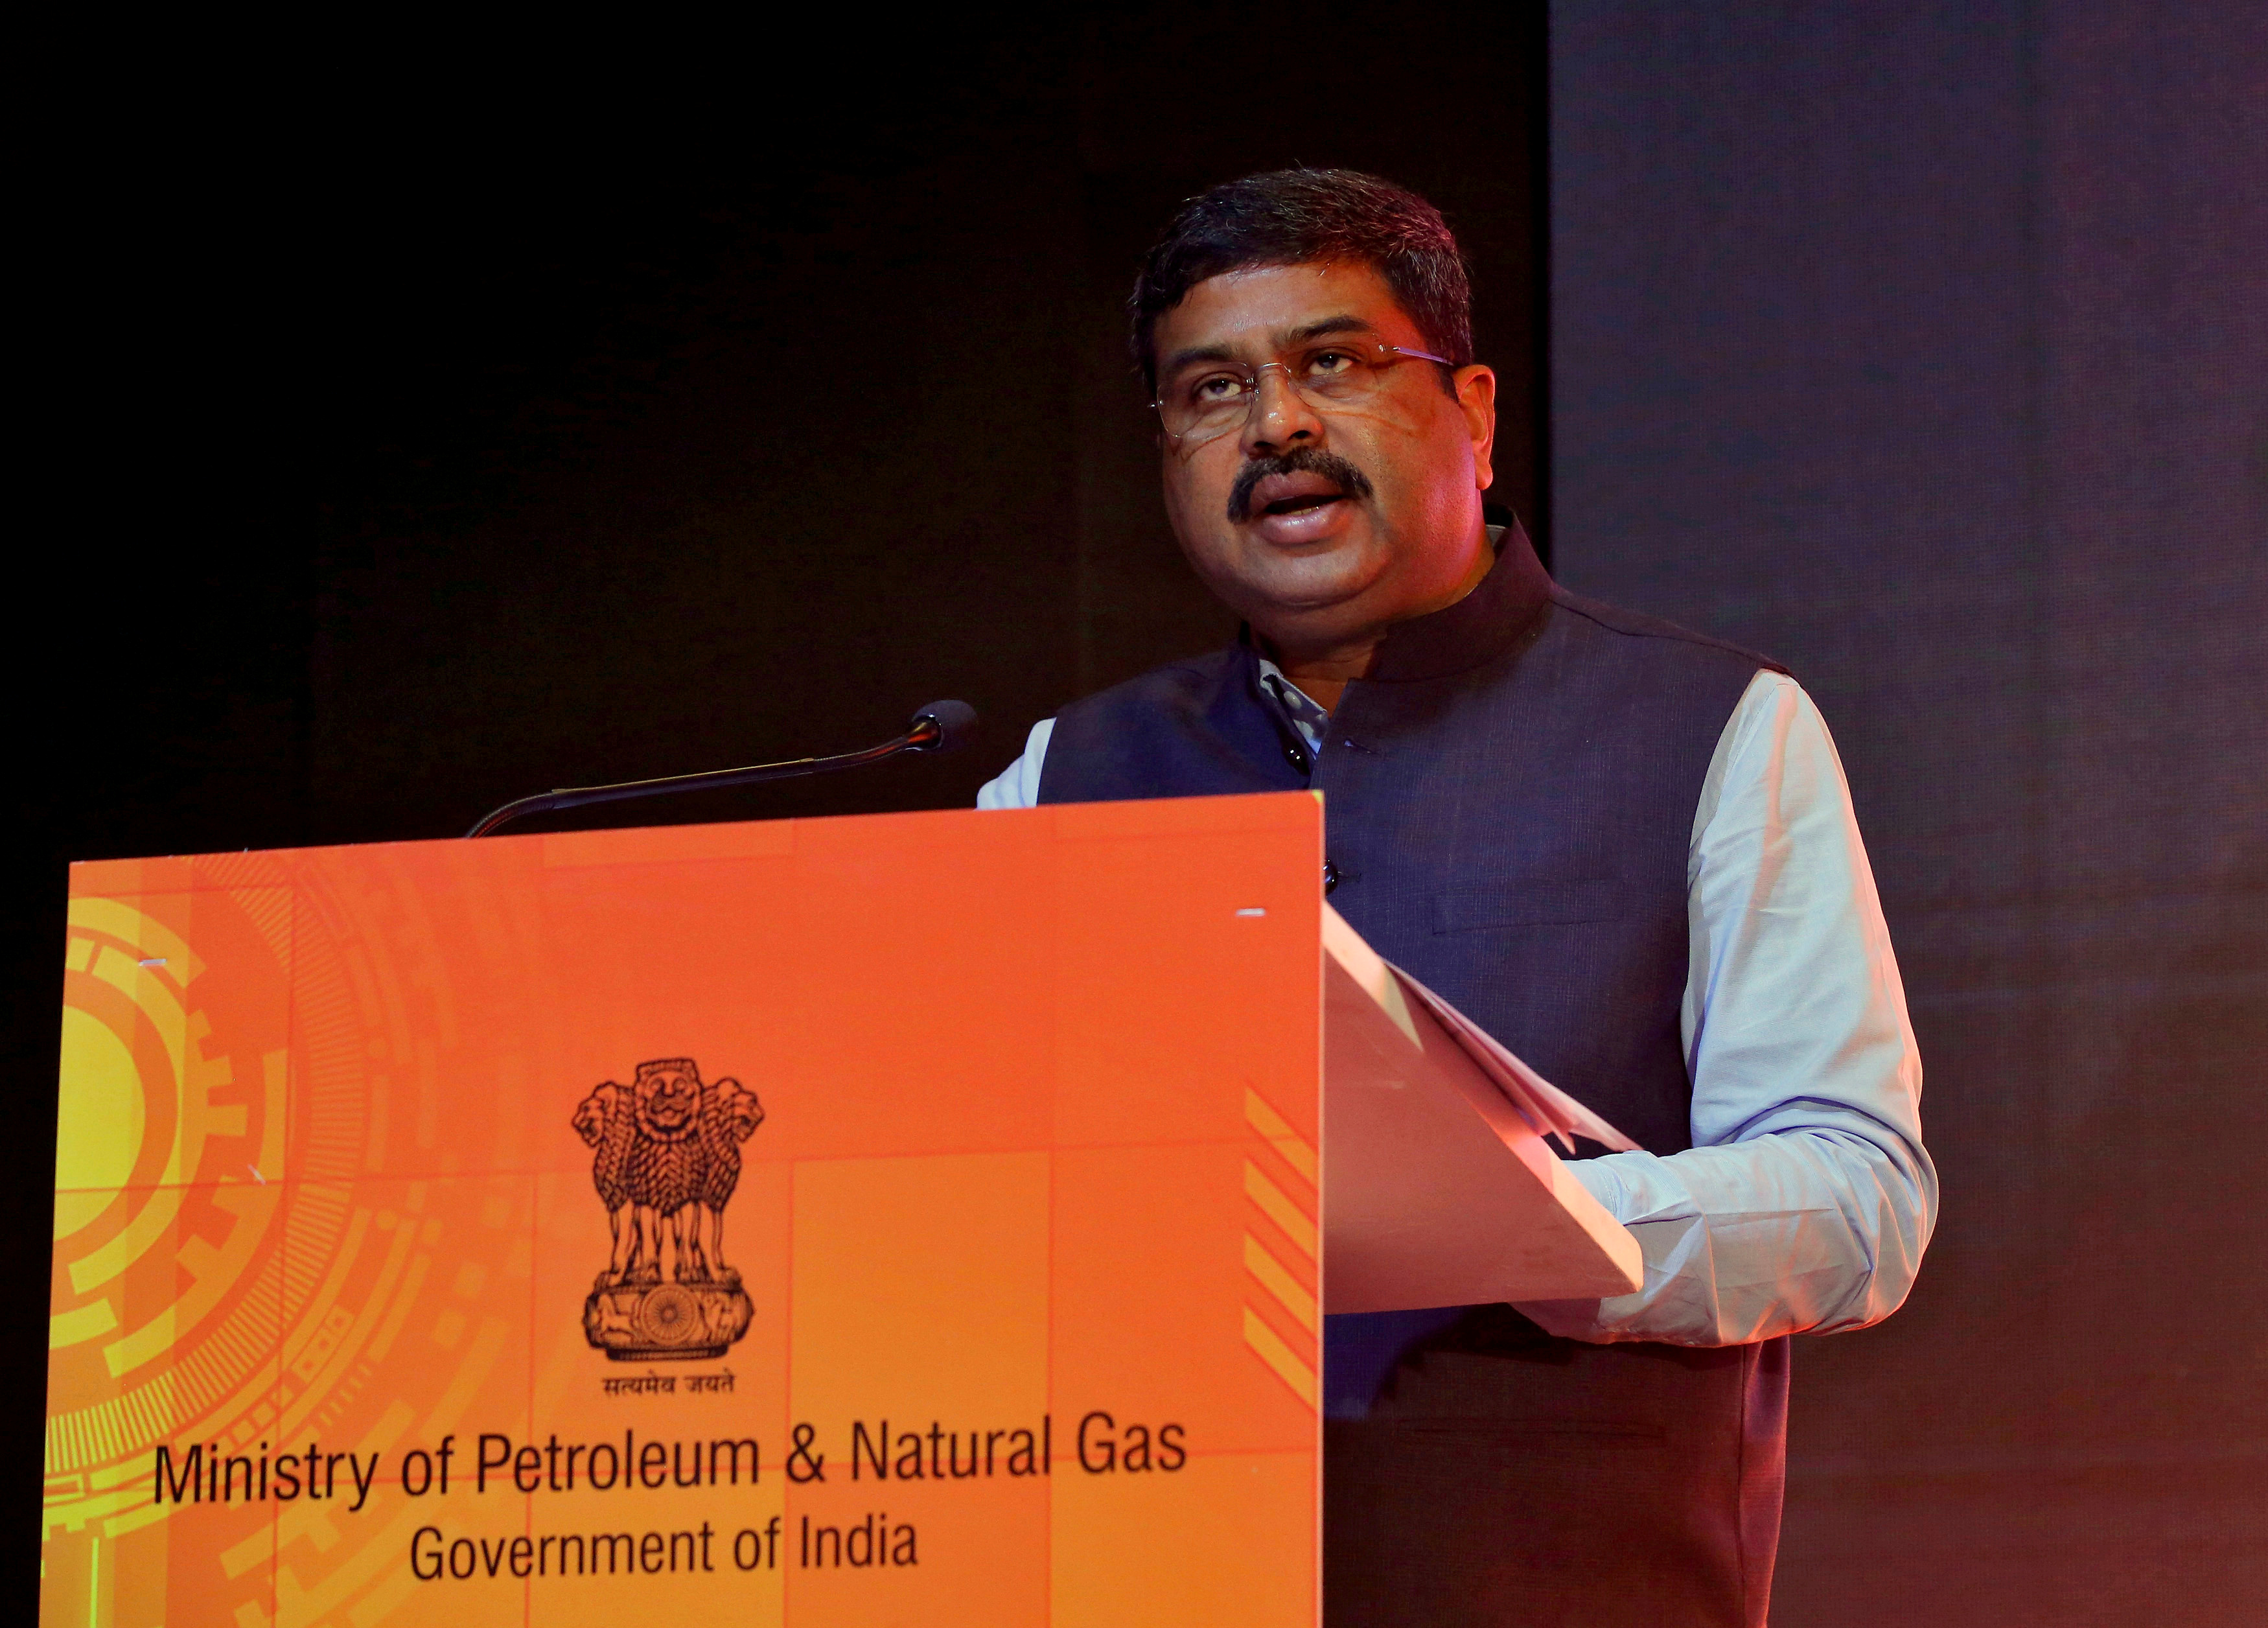 India's Oil Minister Dharmendra Pradhan speaks at a road show organised by the Directorate General  of Hydrocarbon (DGH) in Mumbai, India, October 26, 2017. REUTERS/Shailesh Andrade